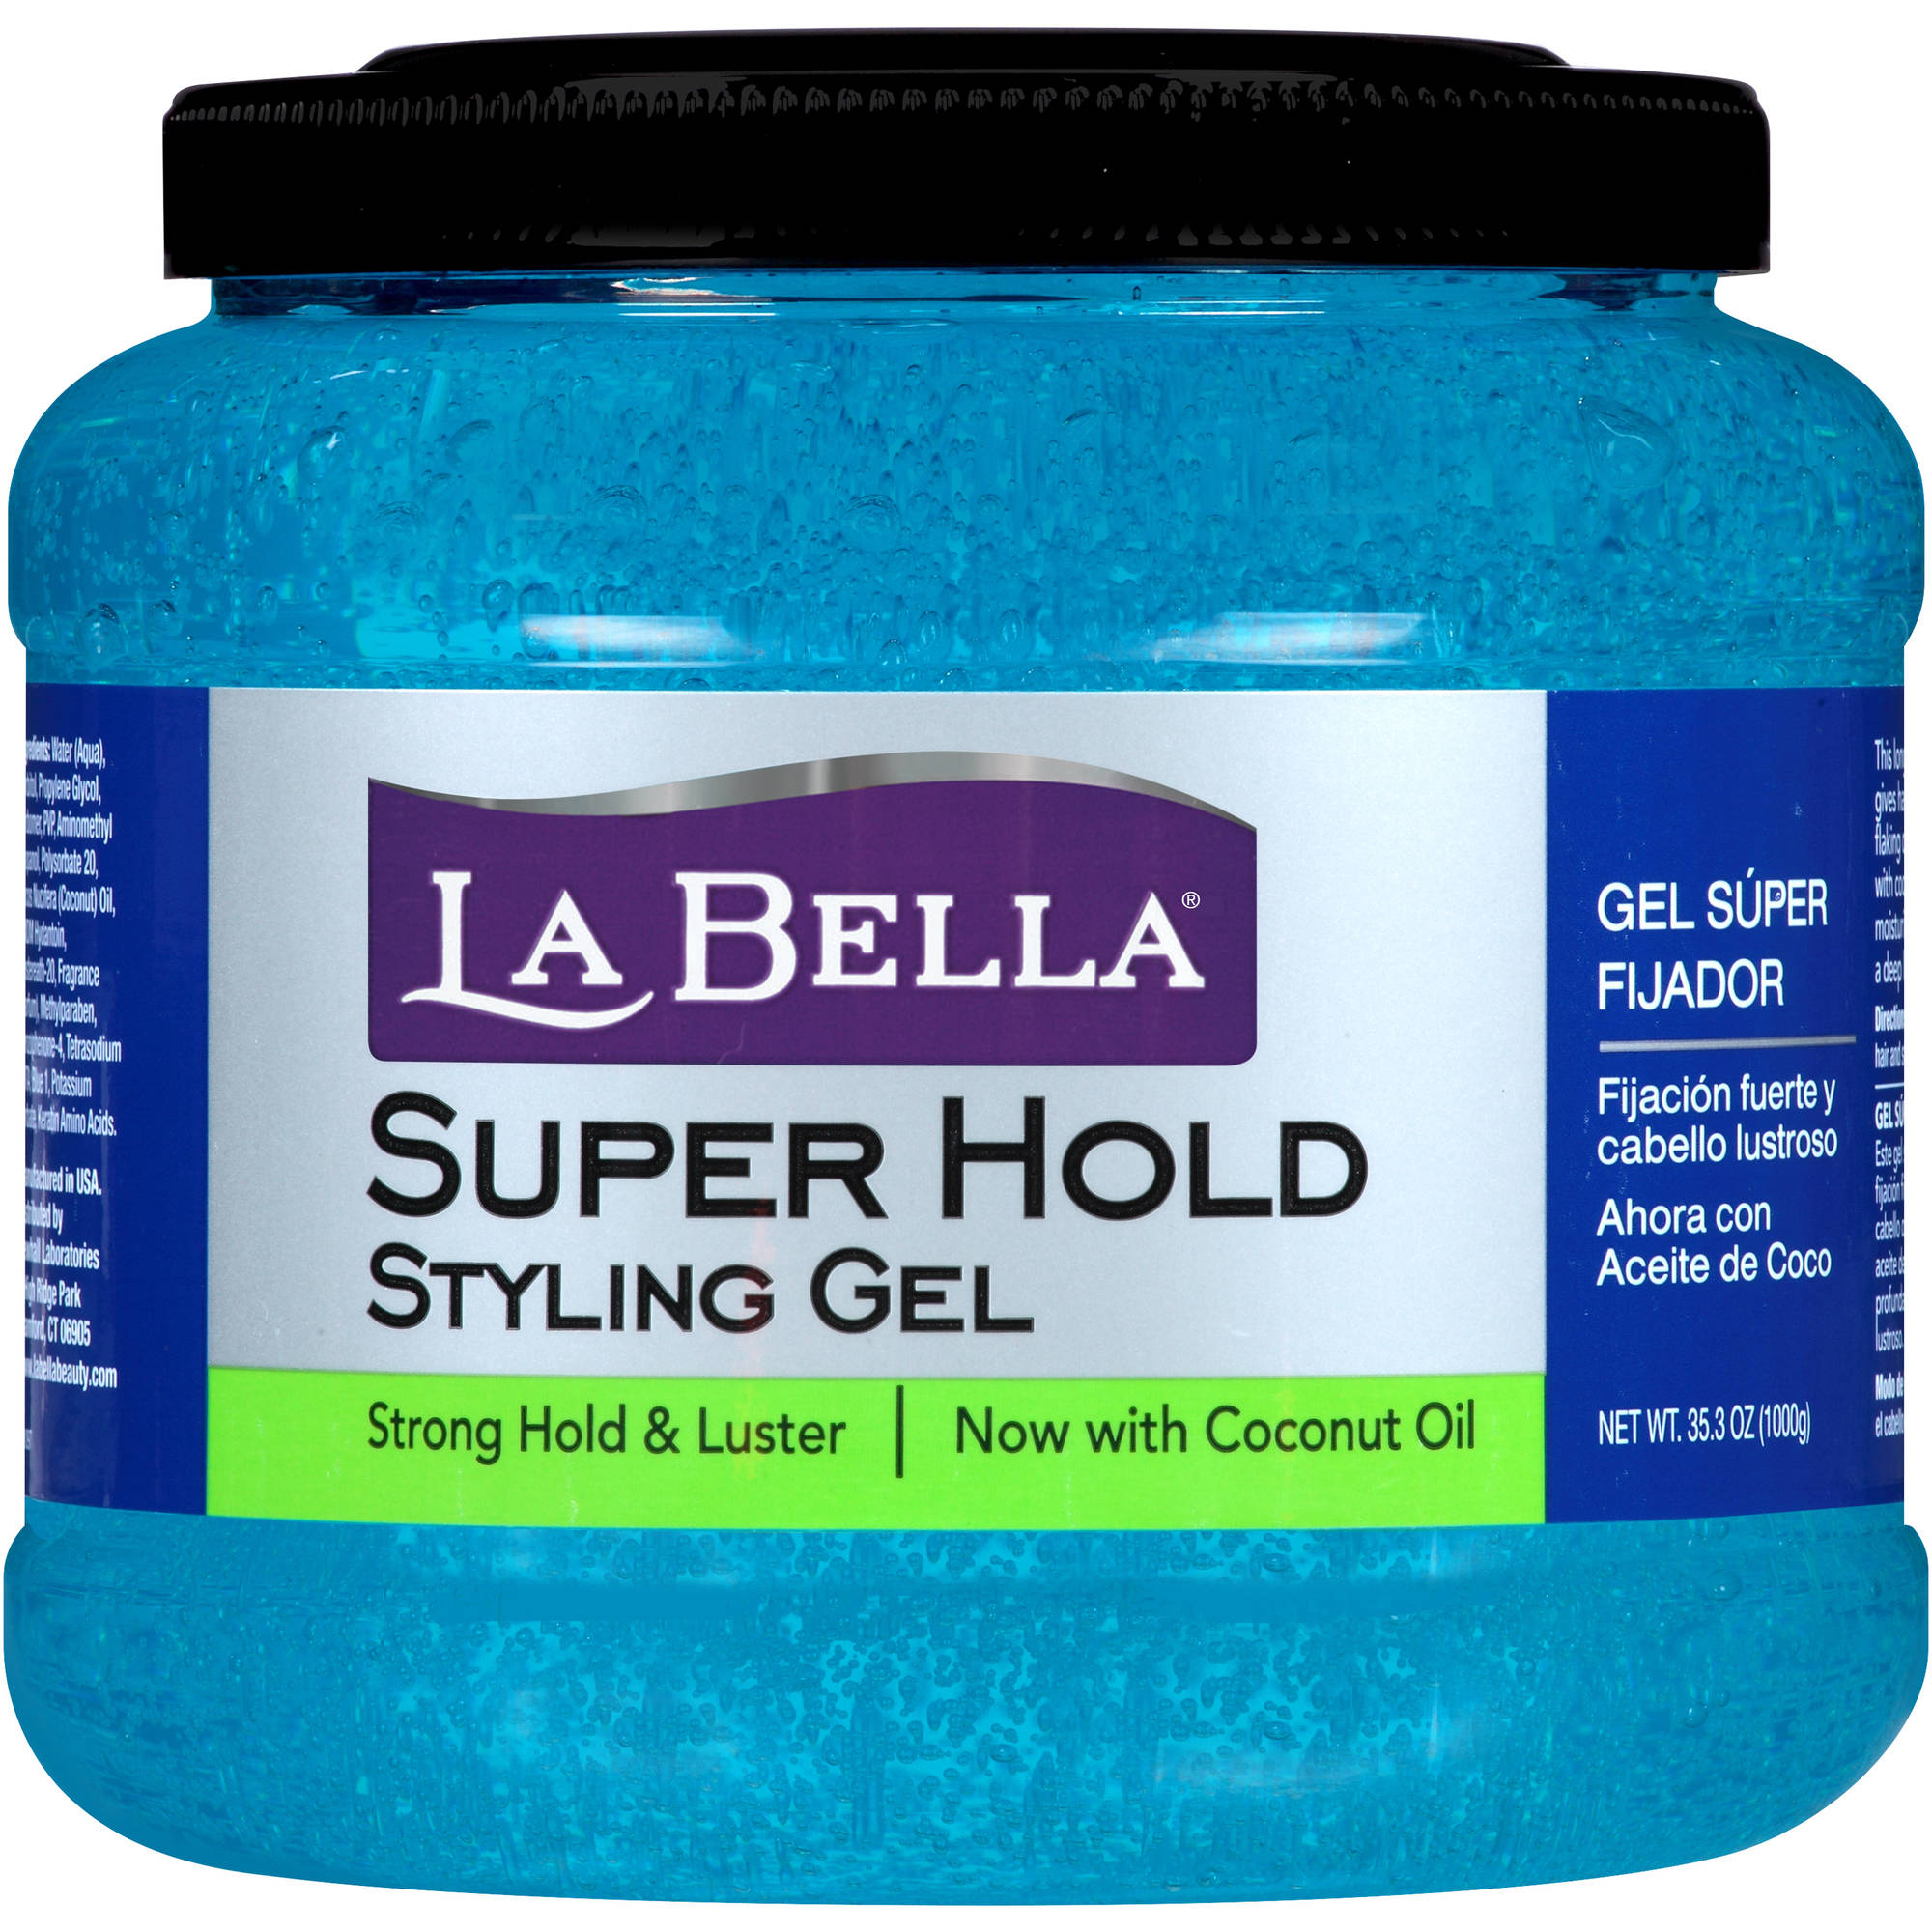 La Bella Super Hold Styling Gel, 35.3 oz